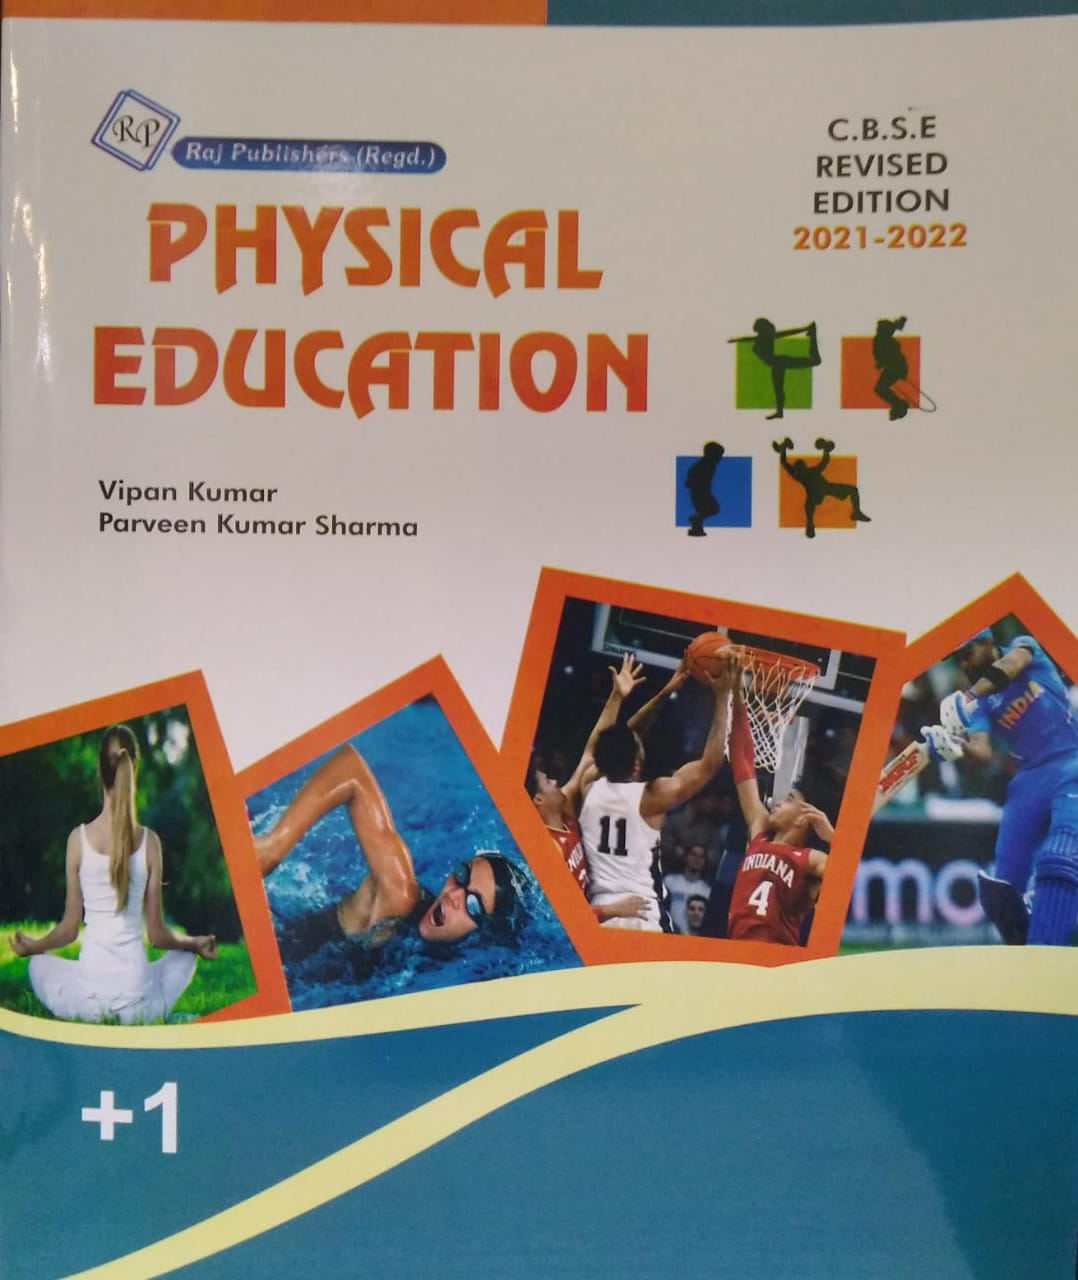 A Text Book of Physical Education, C.B.S.E 11th Class by Vipan Kumar & Parveen Kumar Sharma Revised Edition 2021-22 for Raj Publishers